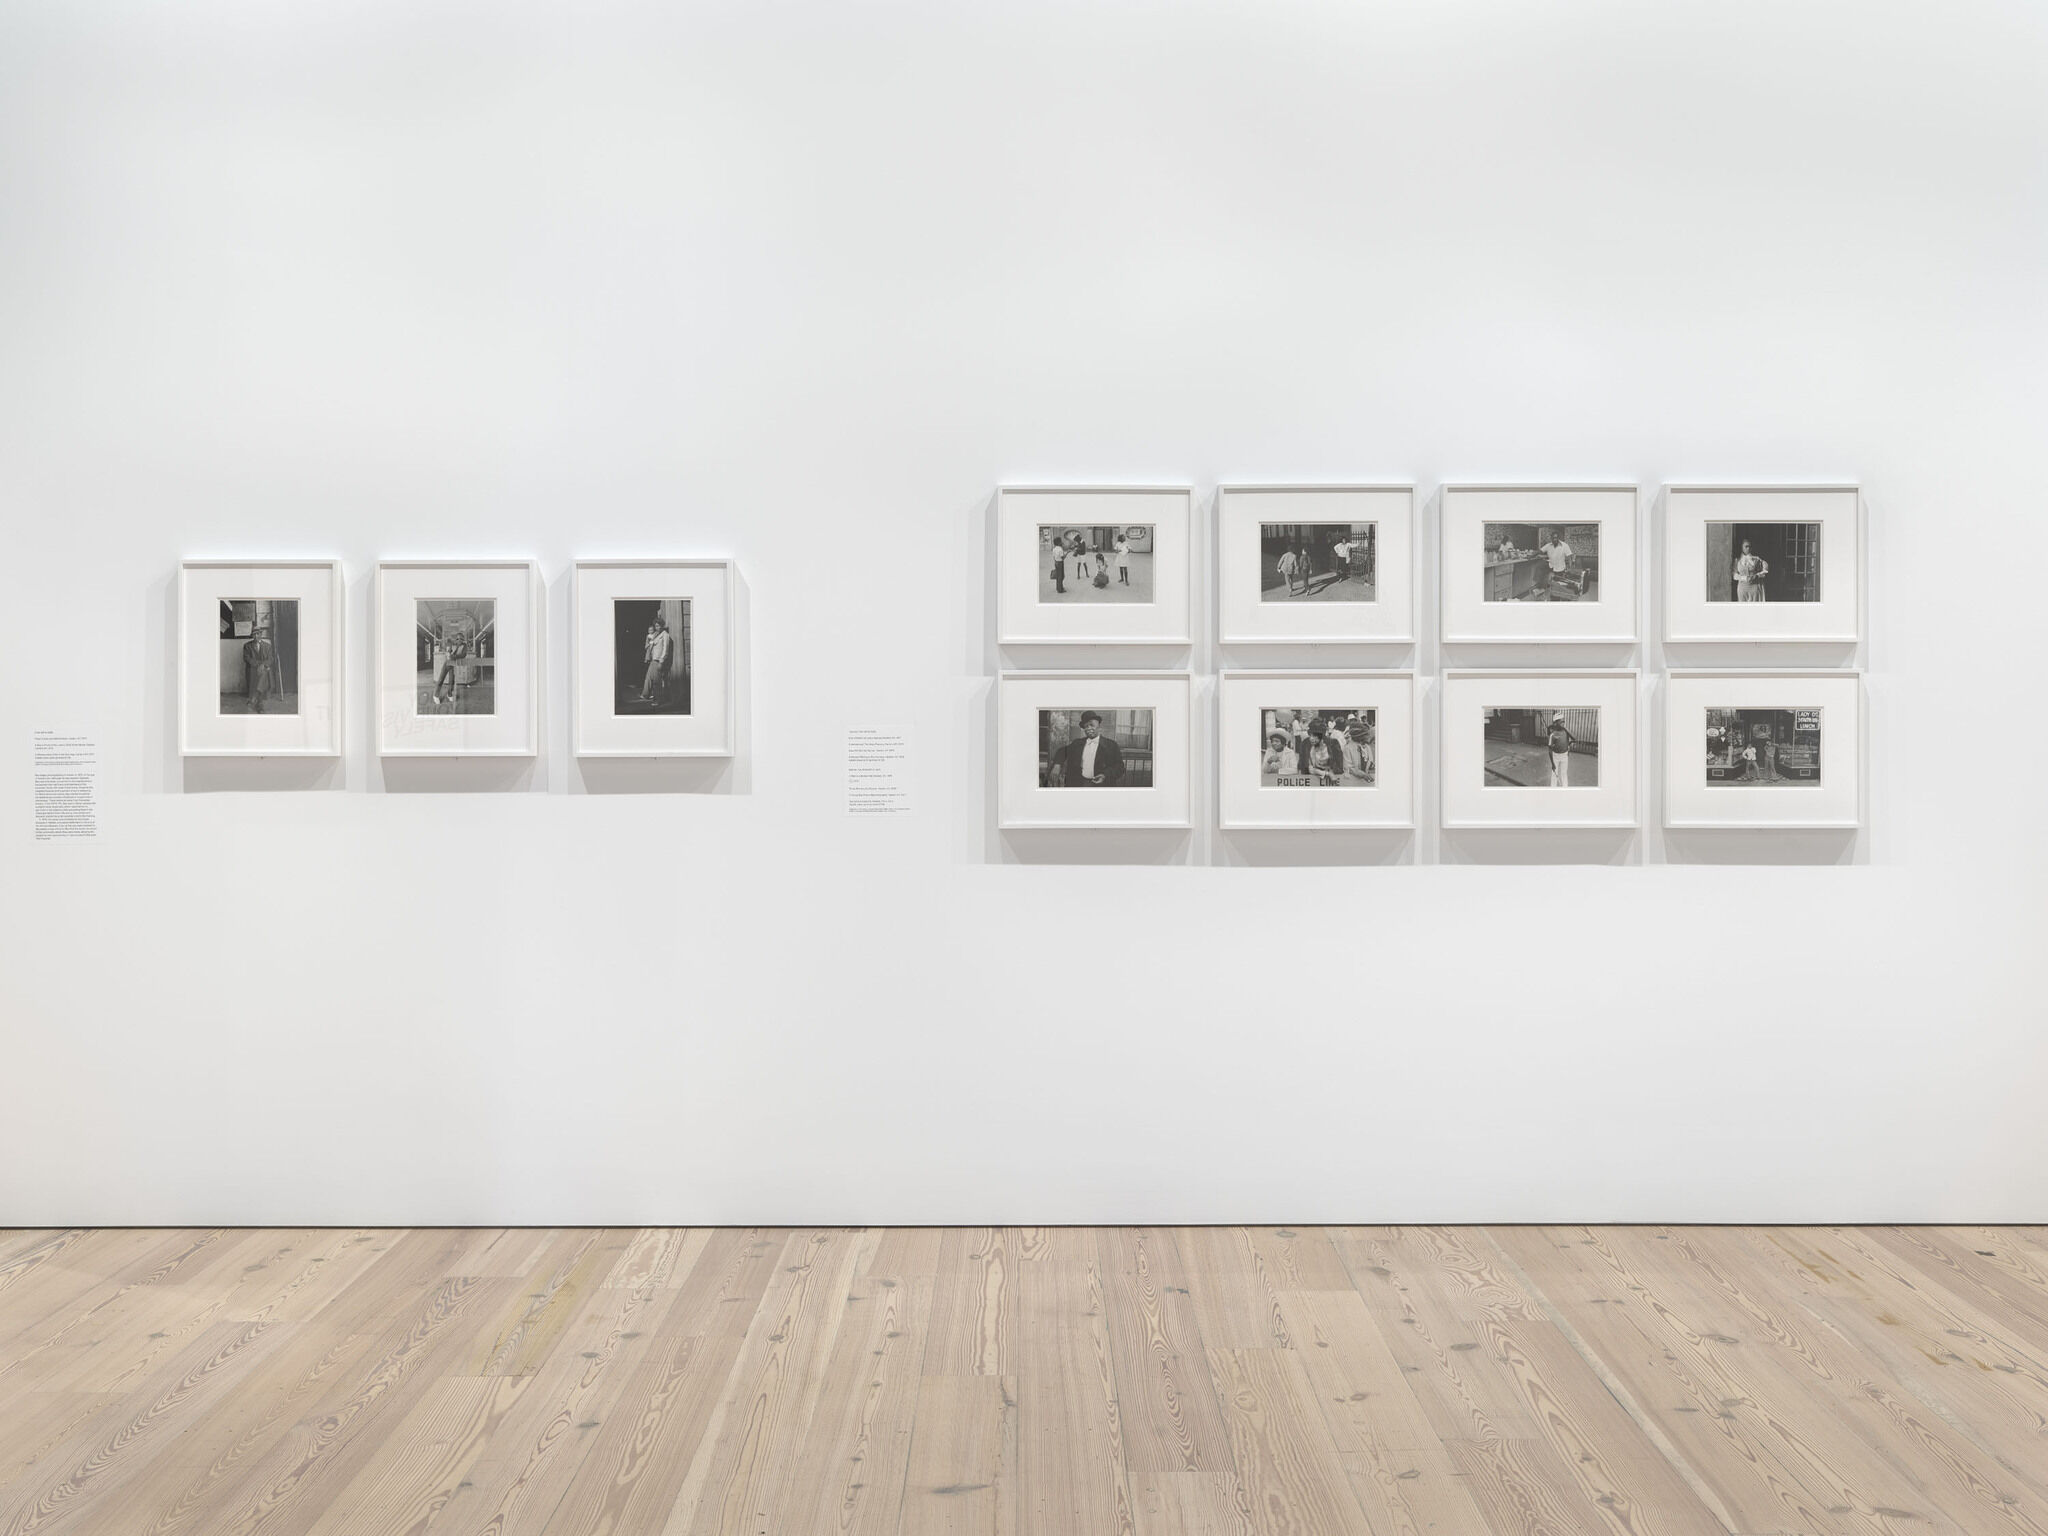 An exhibition wall with eleven framed photographs from the Dawoud Bey exhibition.